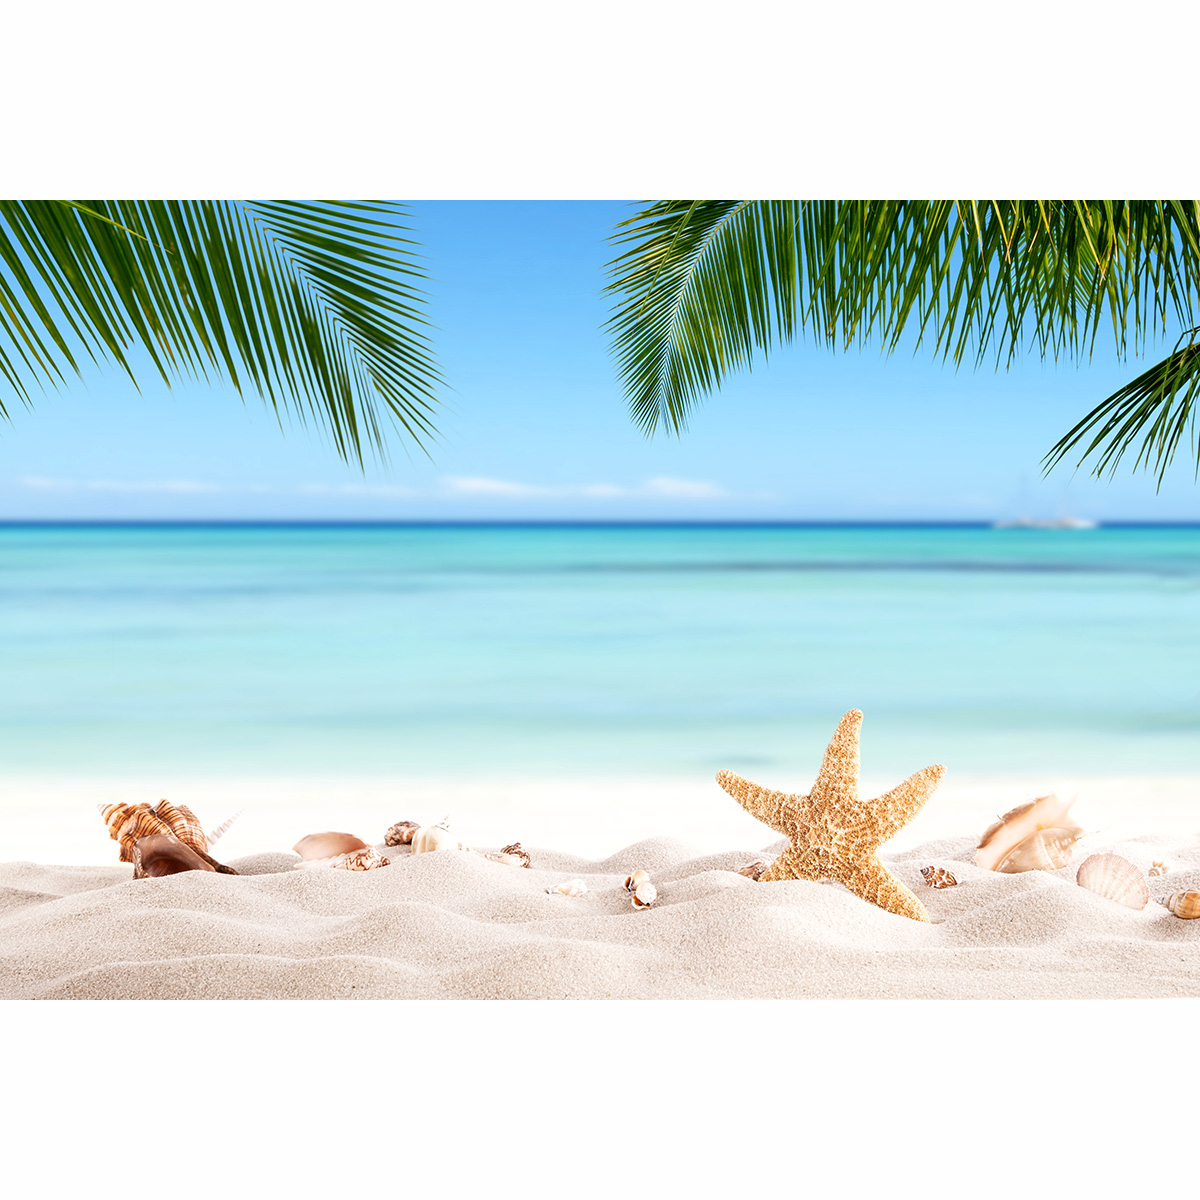 allenjoy backgrounds for photography studio summer sandy beach with